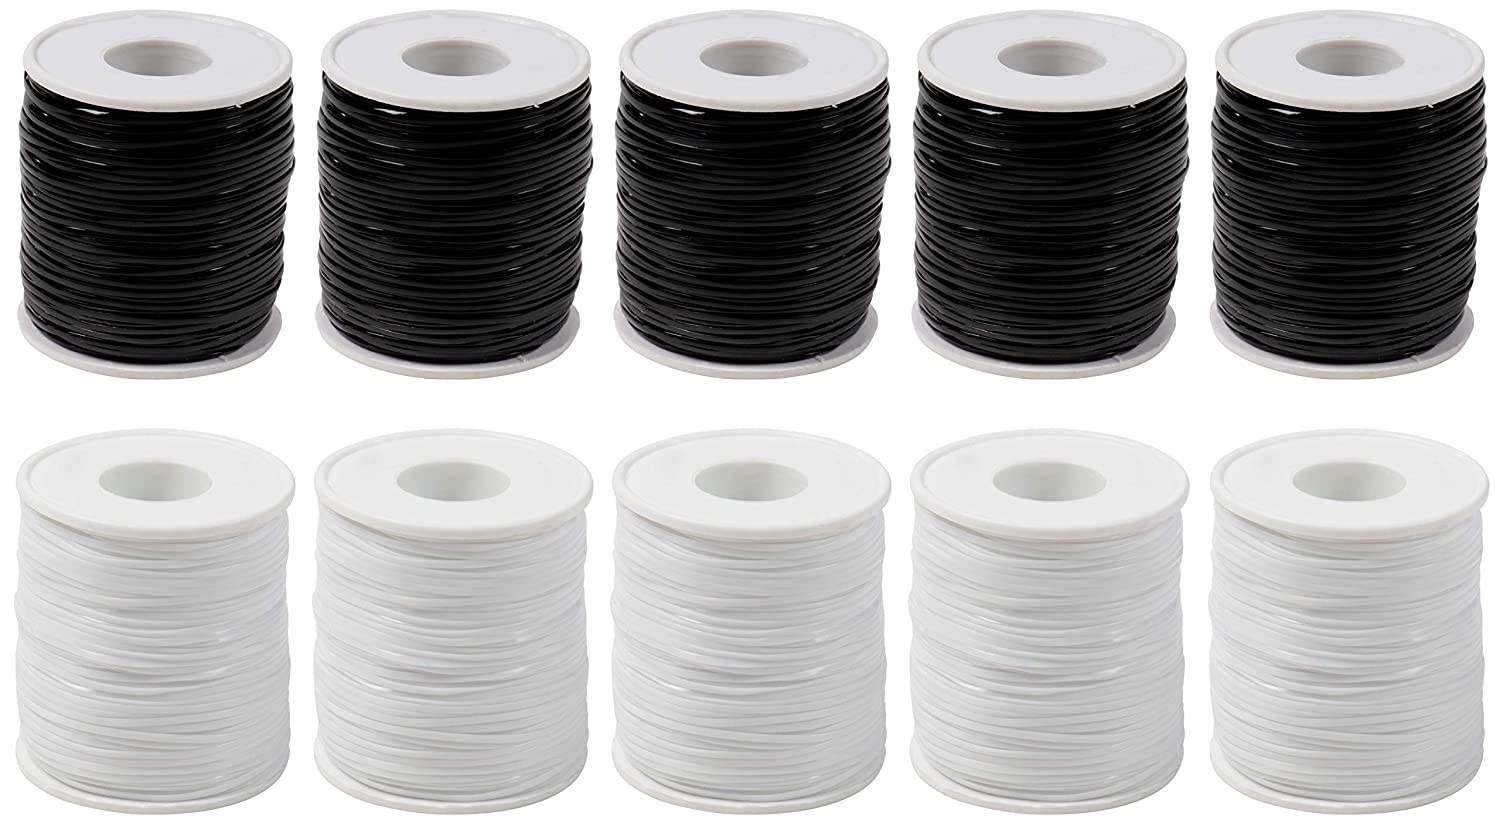 Plastic Lacing Cord - 10-Pack Plastic String, Gimp String, for Lanyard, Friendship Bracelet Jewelry Making, Keychain Charm, DIY Craft, Black and White, 0.06 inches Wide, 100 Yards Each